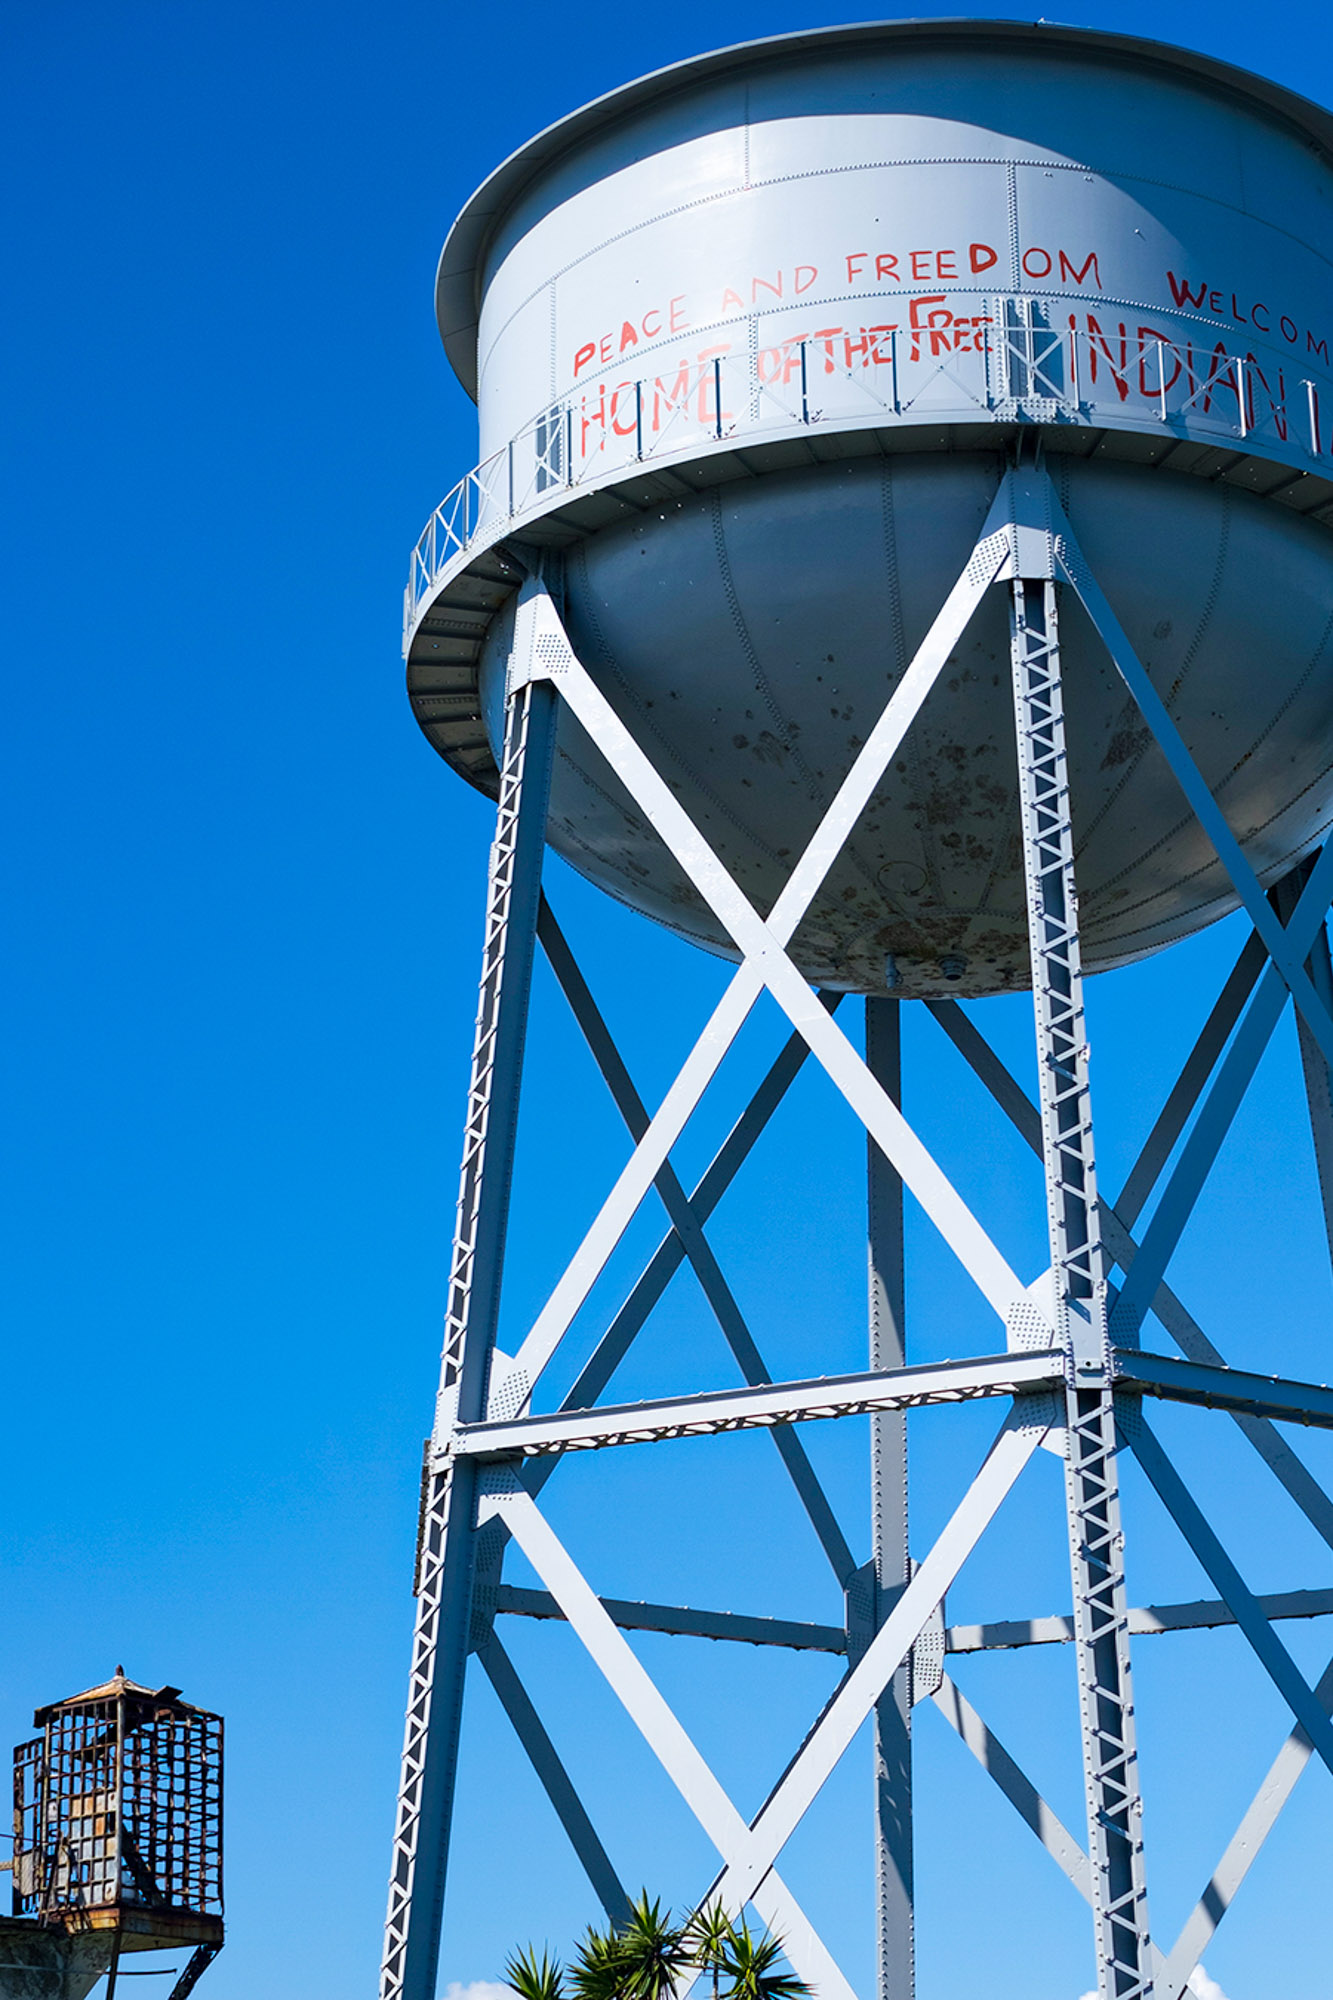 a water tower displays protest messages on Alcatraz Island in California